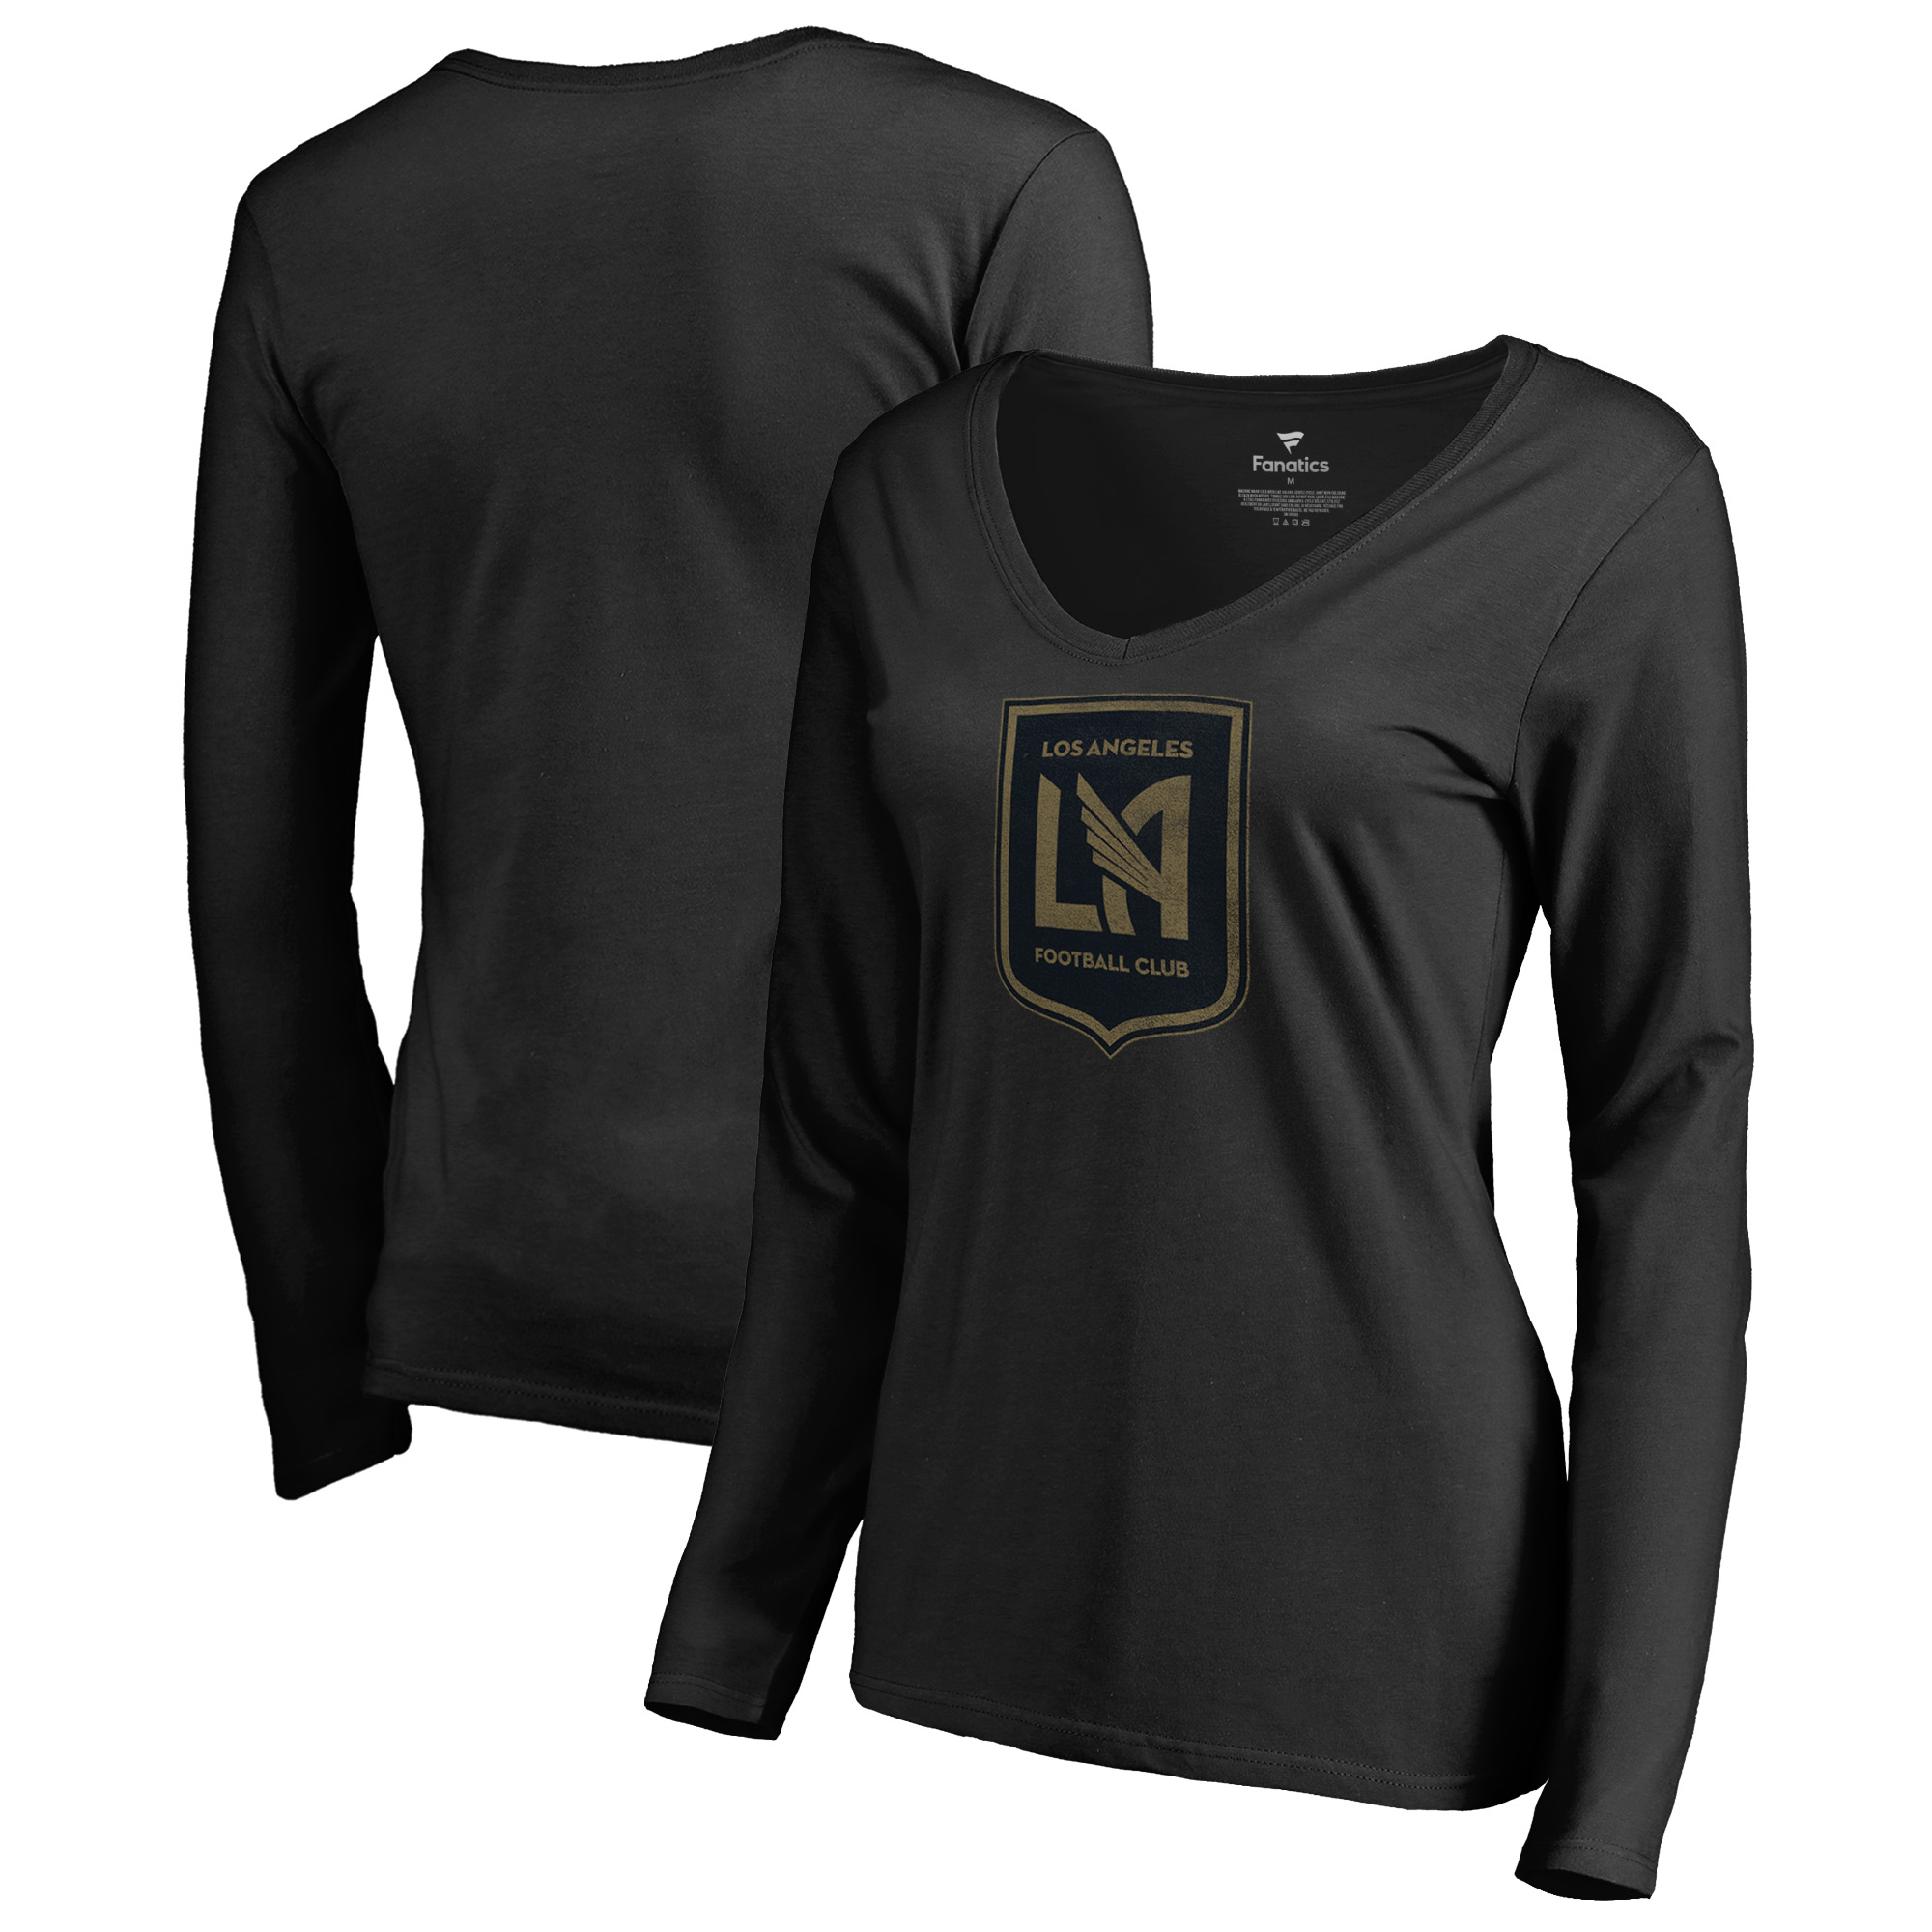 LAFC Fanatics Branded Women's Graceful V-Neck Long Sleeve T-Shirt - Black